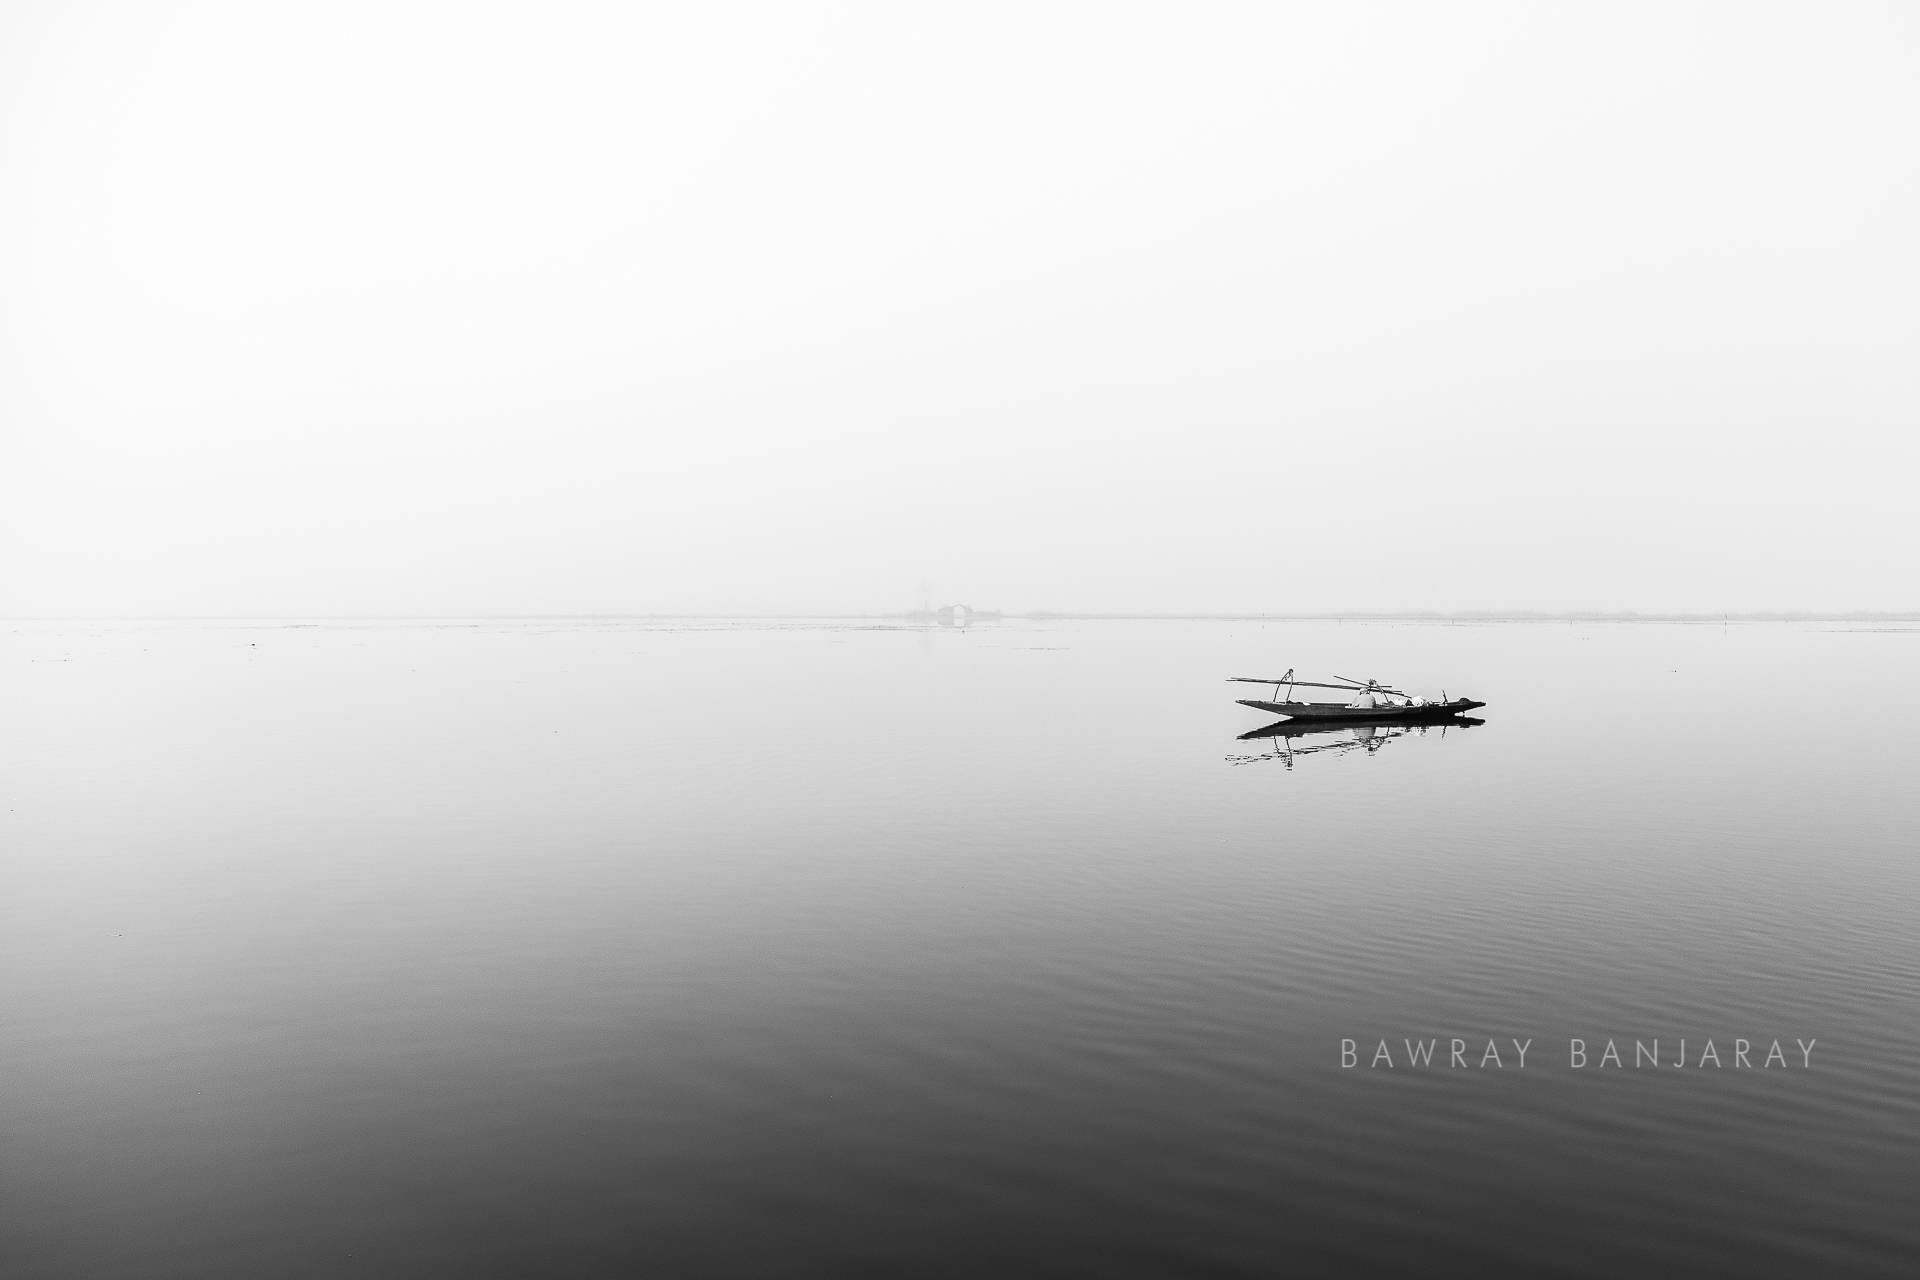 bawray Banjaray at Dal Lake in Srinagar